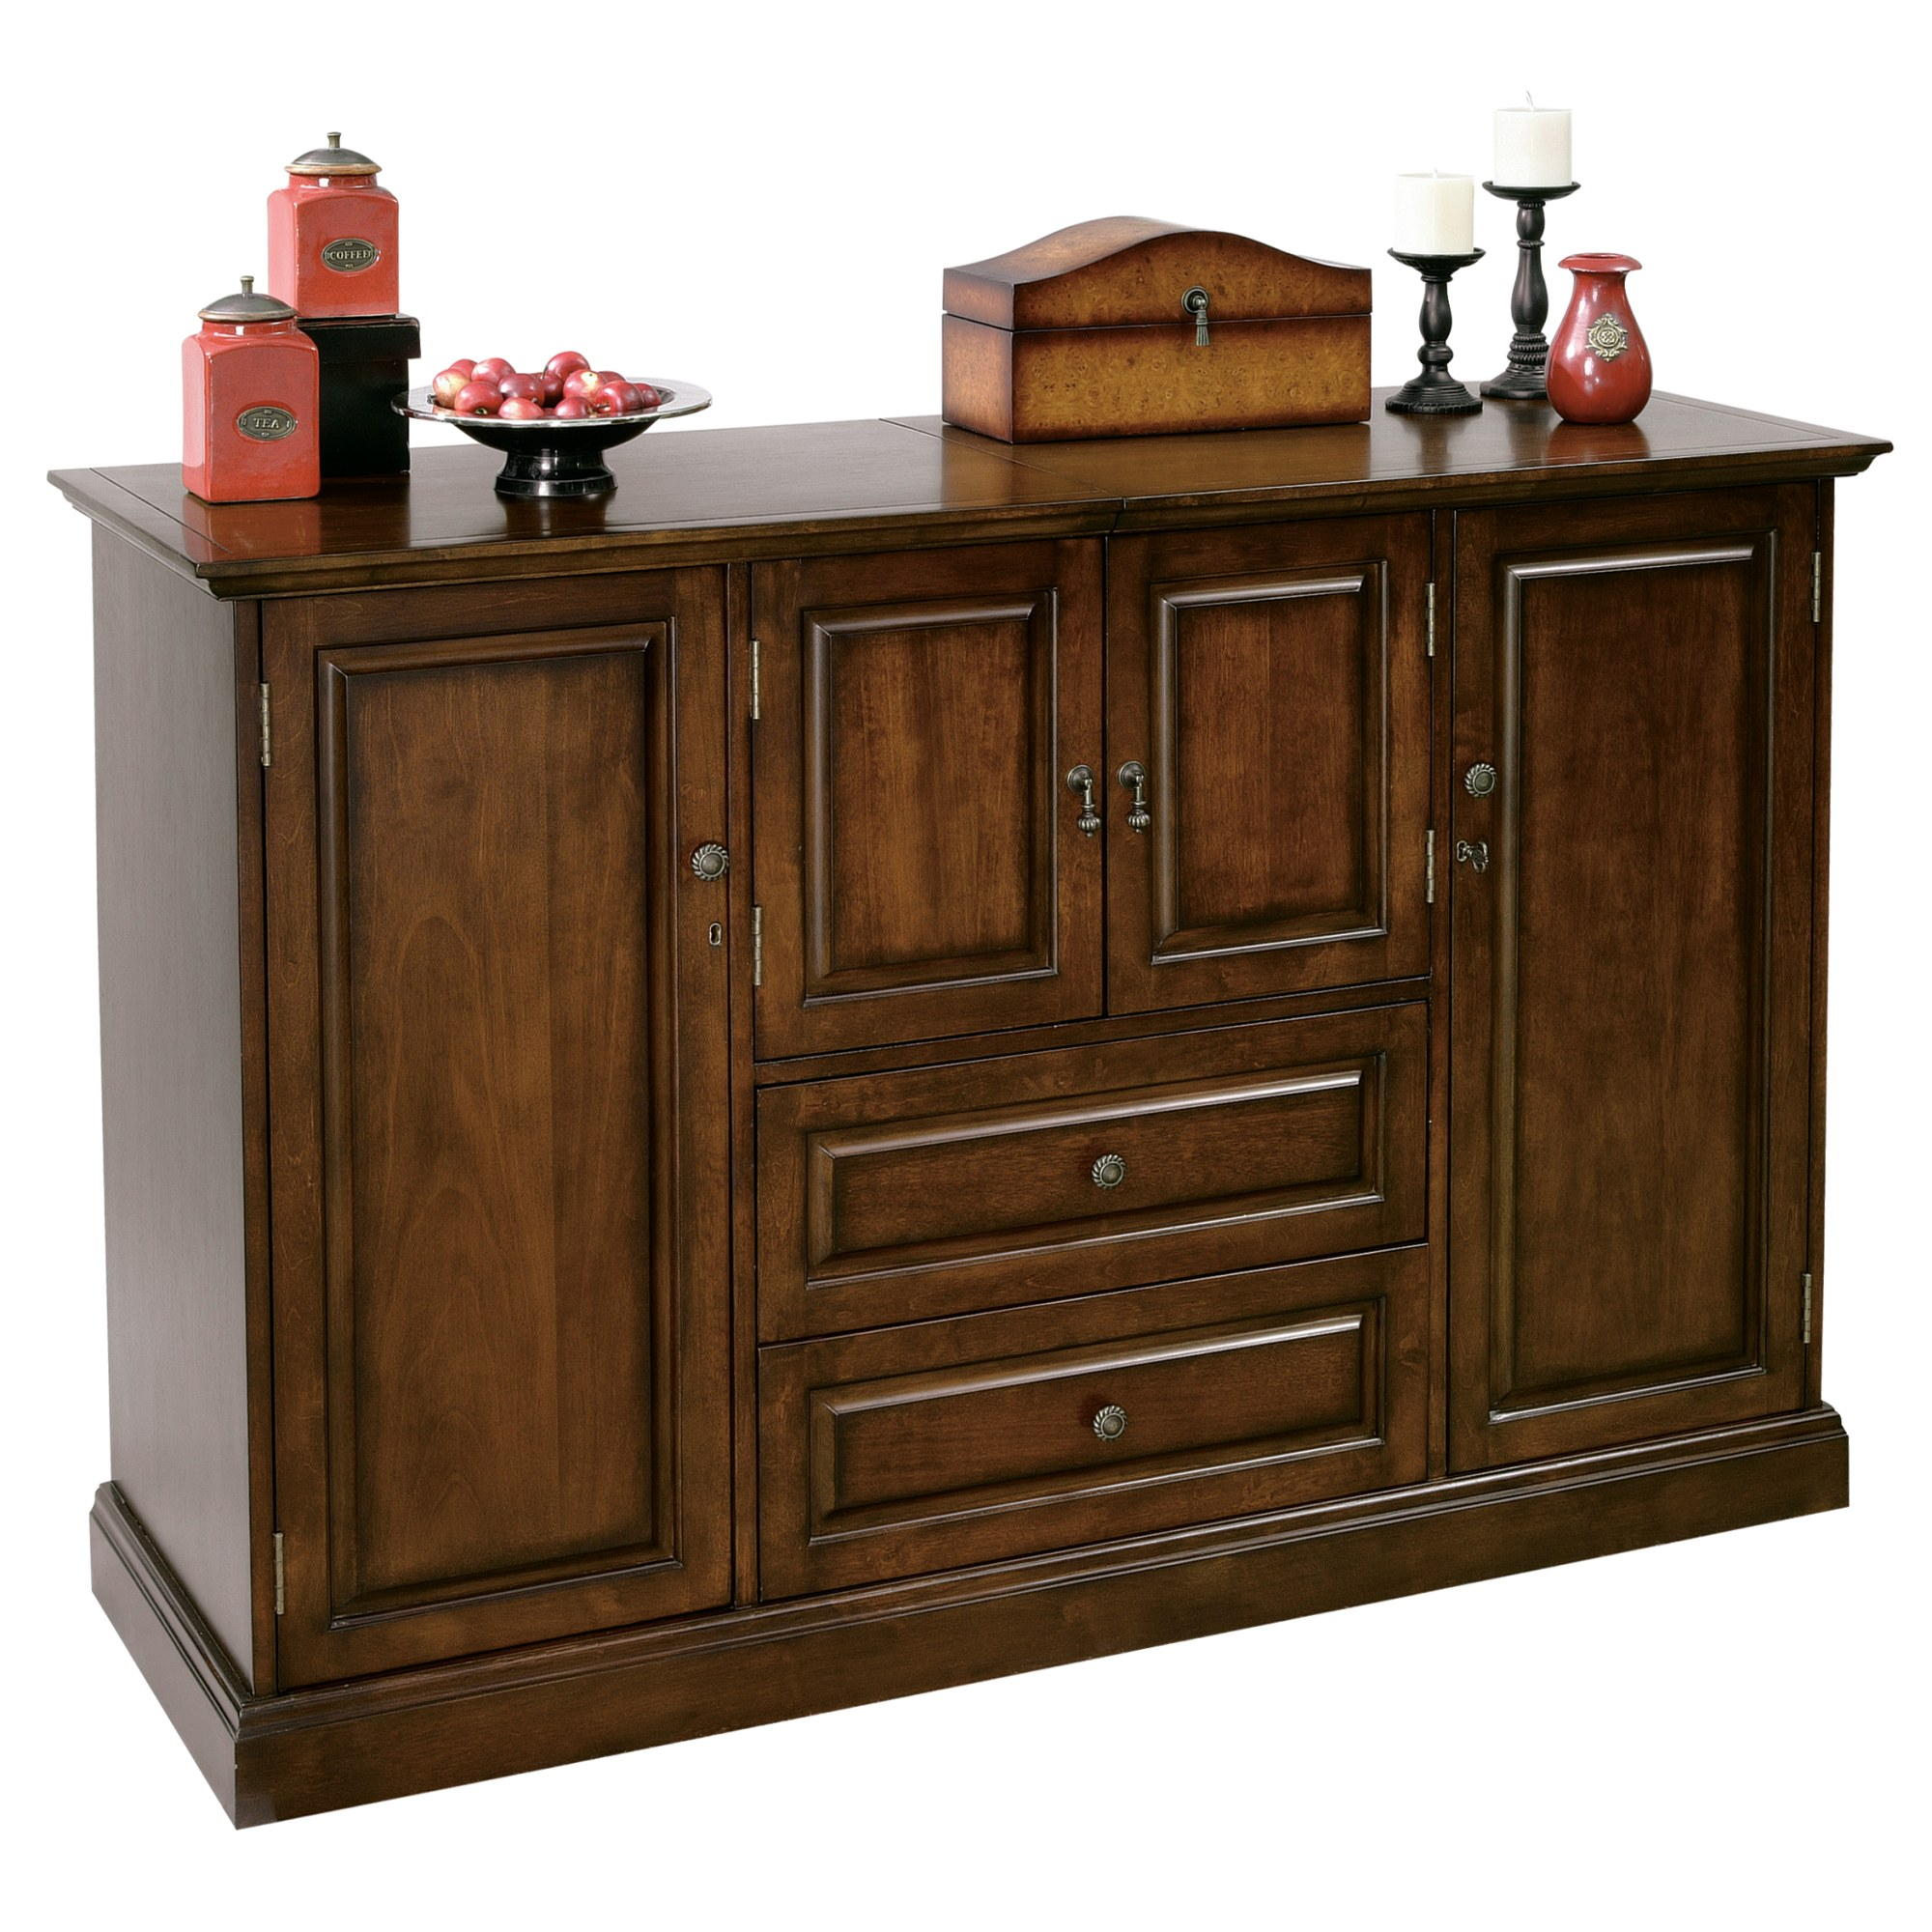 Image for 695-081 Bar Devino II Wine & Bar Console from Howard Miller Official Website